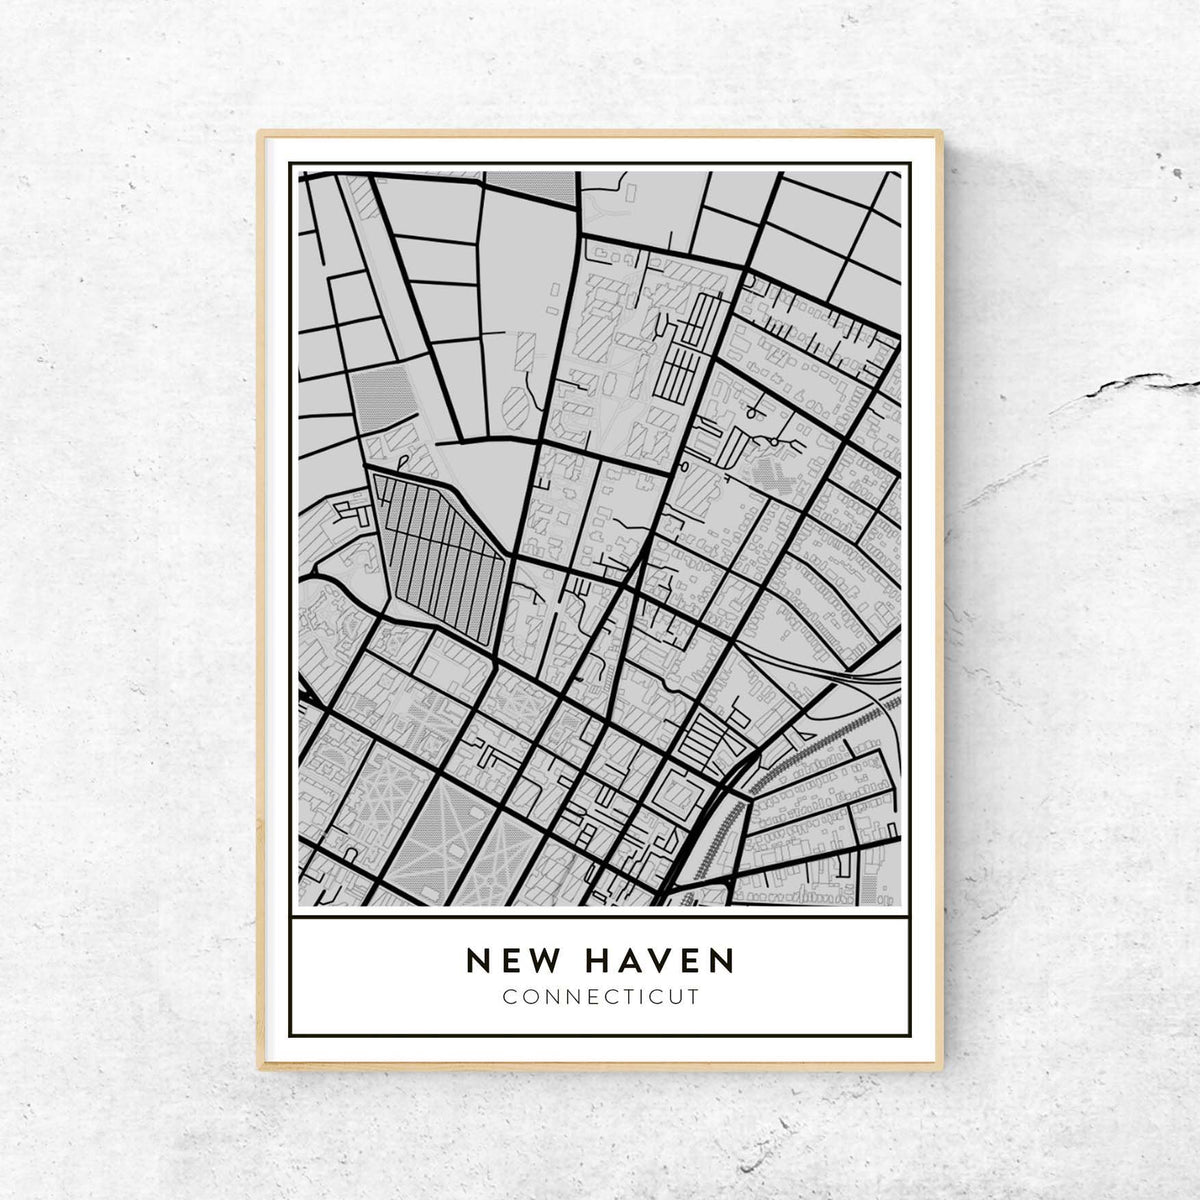 Yale University Campus Map Art Print (Portrait) on yale campus map west haven, stamford campus map, walking at hospital map, yale google maps, williams college campus map, yale medical school, streets of new haven map, mayo clinic campus map, england new haven map, stanford campus map, sterling college campus map, university of connecticut map, new haven connecticut map, new haven on a map, yale college,